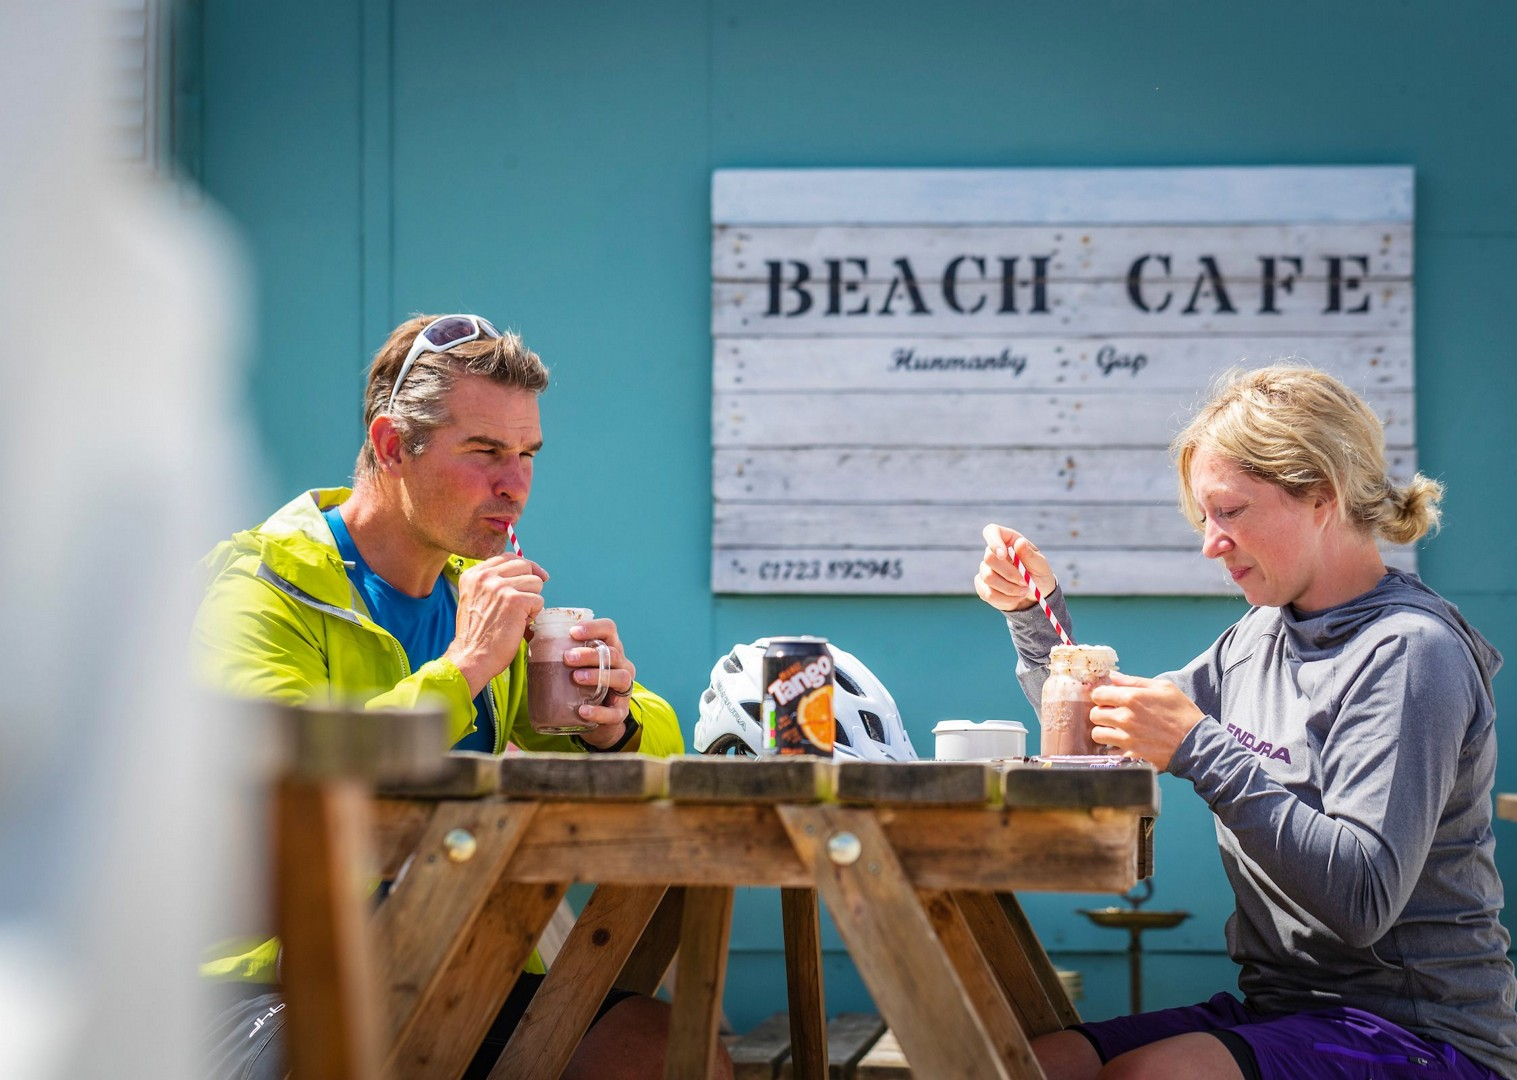 beach-cafe-bempton-yorkshire-cycling.jpg - UK - Yorkshire Wolds - 5 Days Cycling - Self-Guided Leisure Cycling Holiday - Leisure Cycling